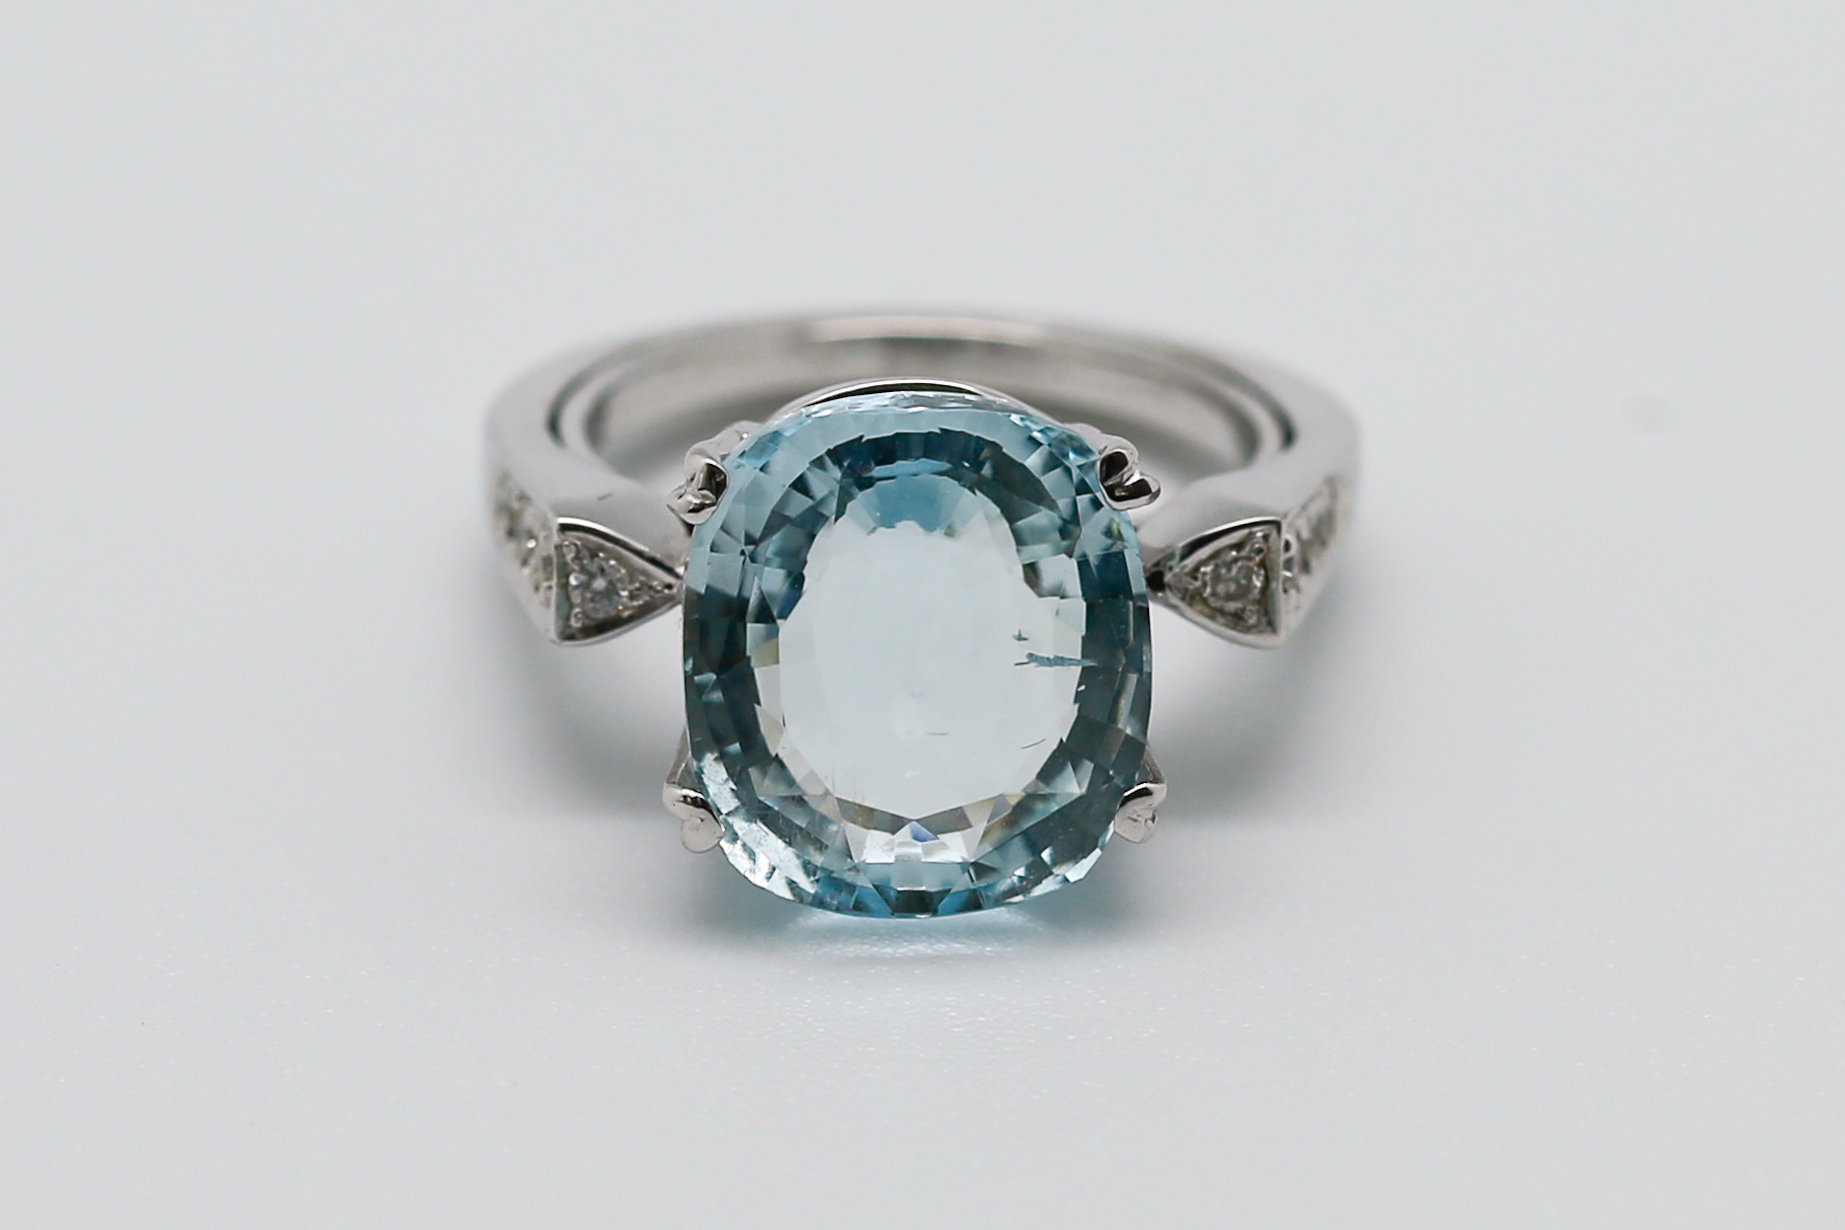 """""""Piscinette"""" is a bespoke piece we created and donated toRiverKids, a charity that works to prevent trafficking of children in Cambodia, for their fundraising efforts. The vintage-inspired designfeatures a clear, light blue aquamarine with an appearance reminiscent of a tiny pool of water, and was inspired by and uniquely created for the charity."""